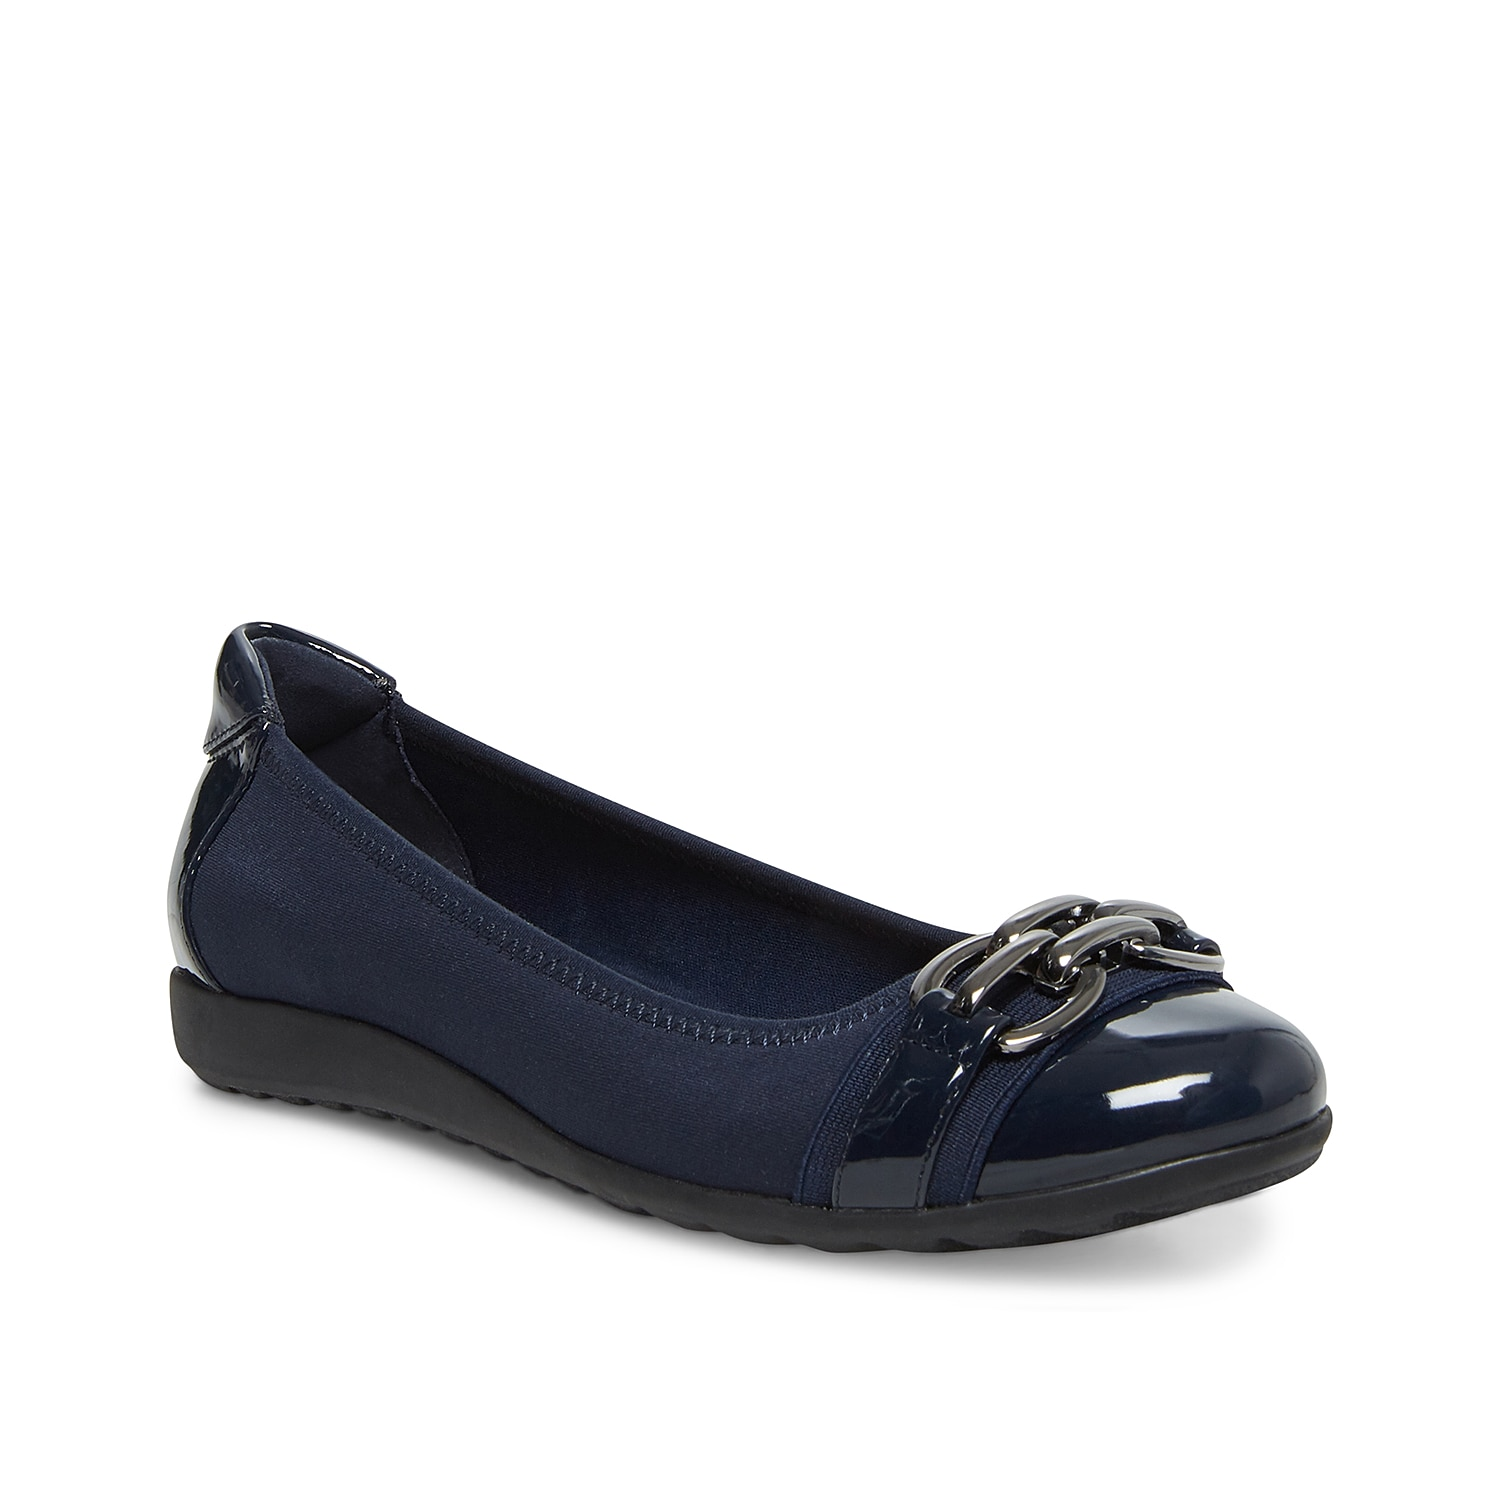 Keep your look cute and casual with the Tahina Flat from Anne Klein. This slip-on features a cushioned footbed and metal-inspired accents for a comfortable and detailed finishing touch!